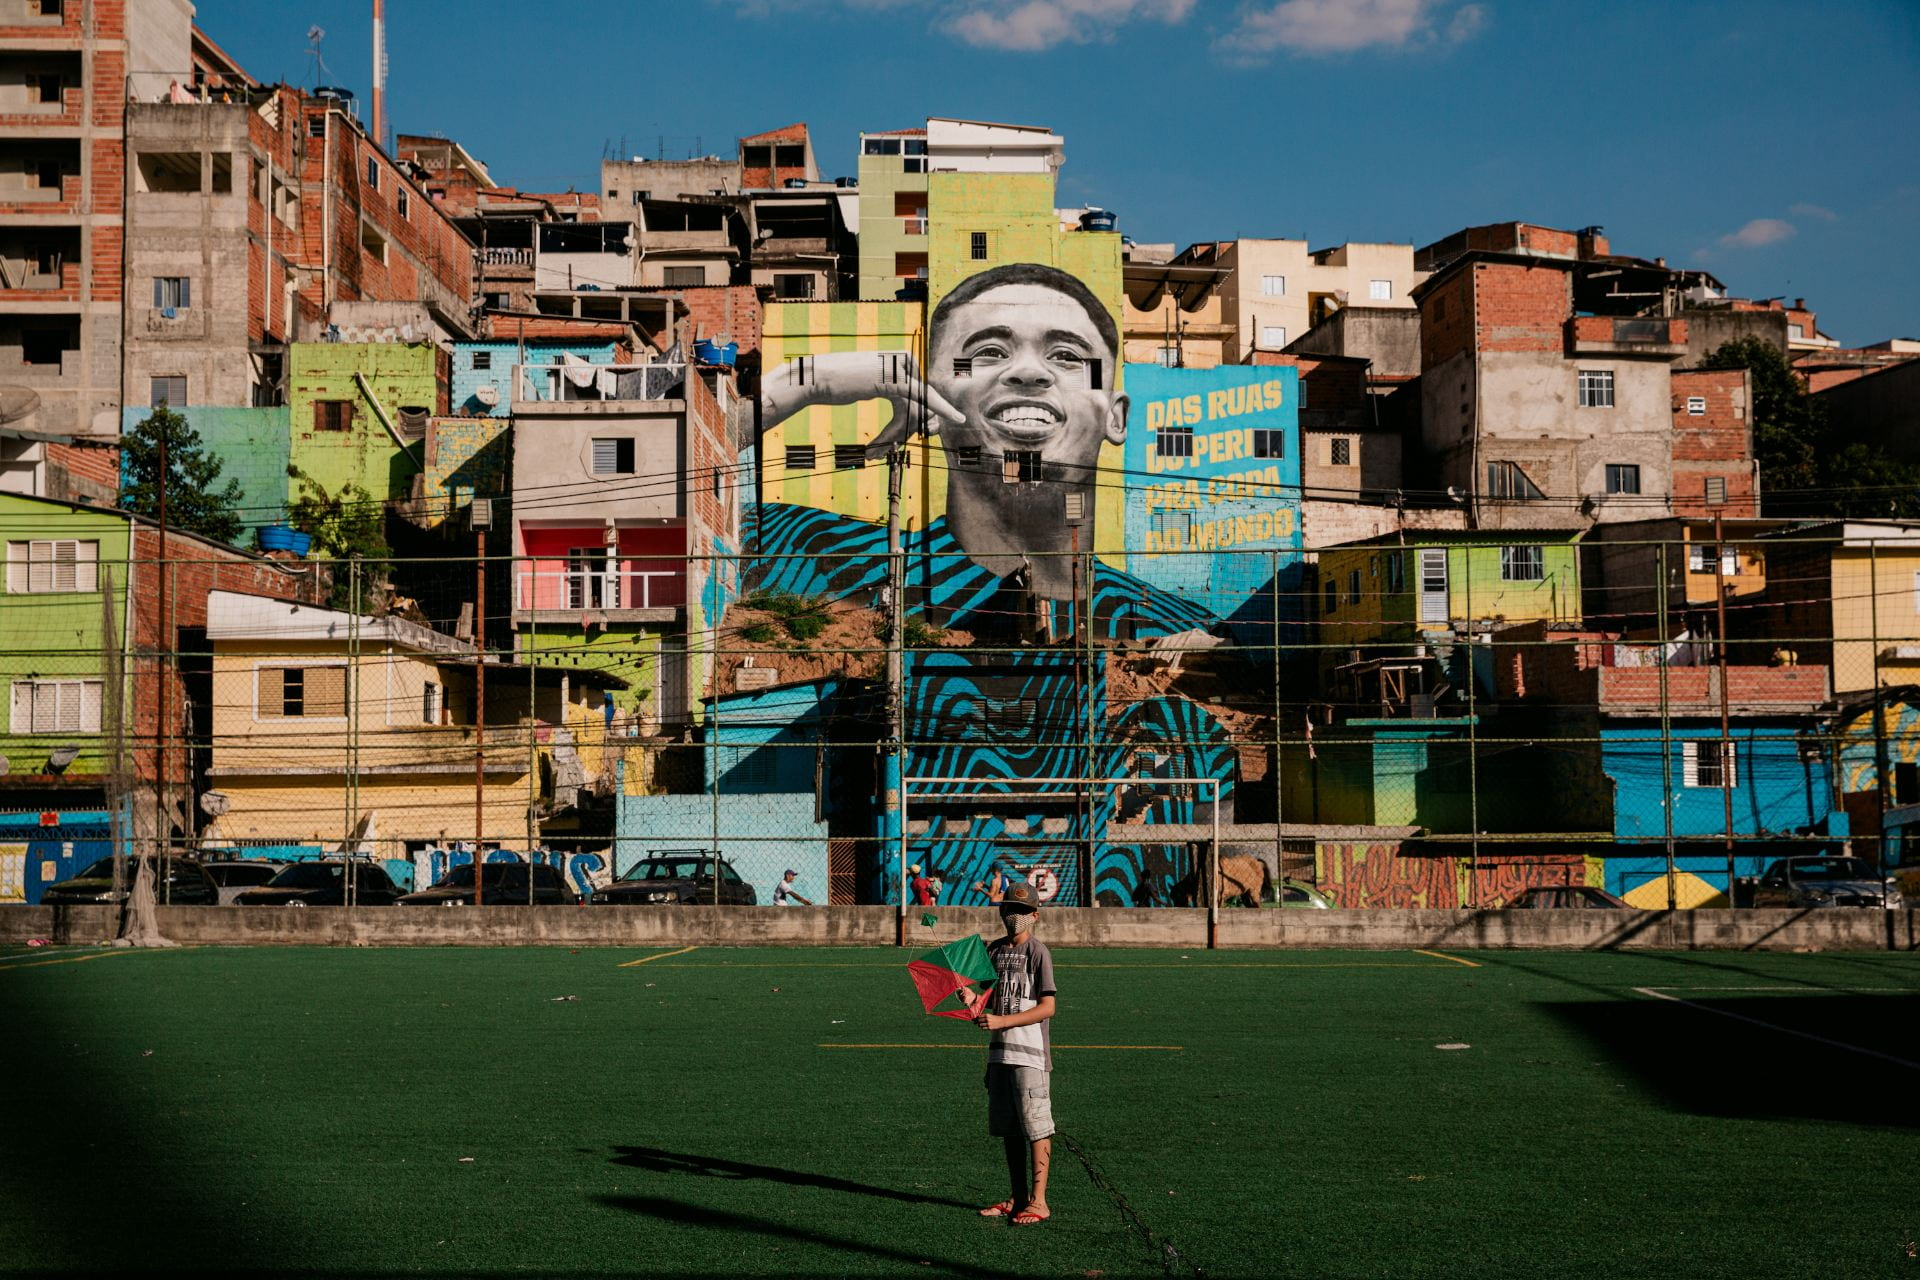 masked boy in sports field in front of murals